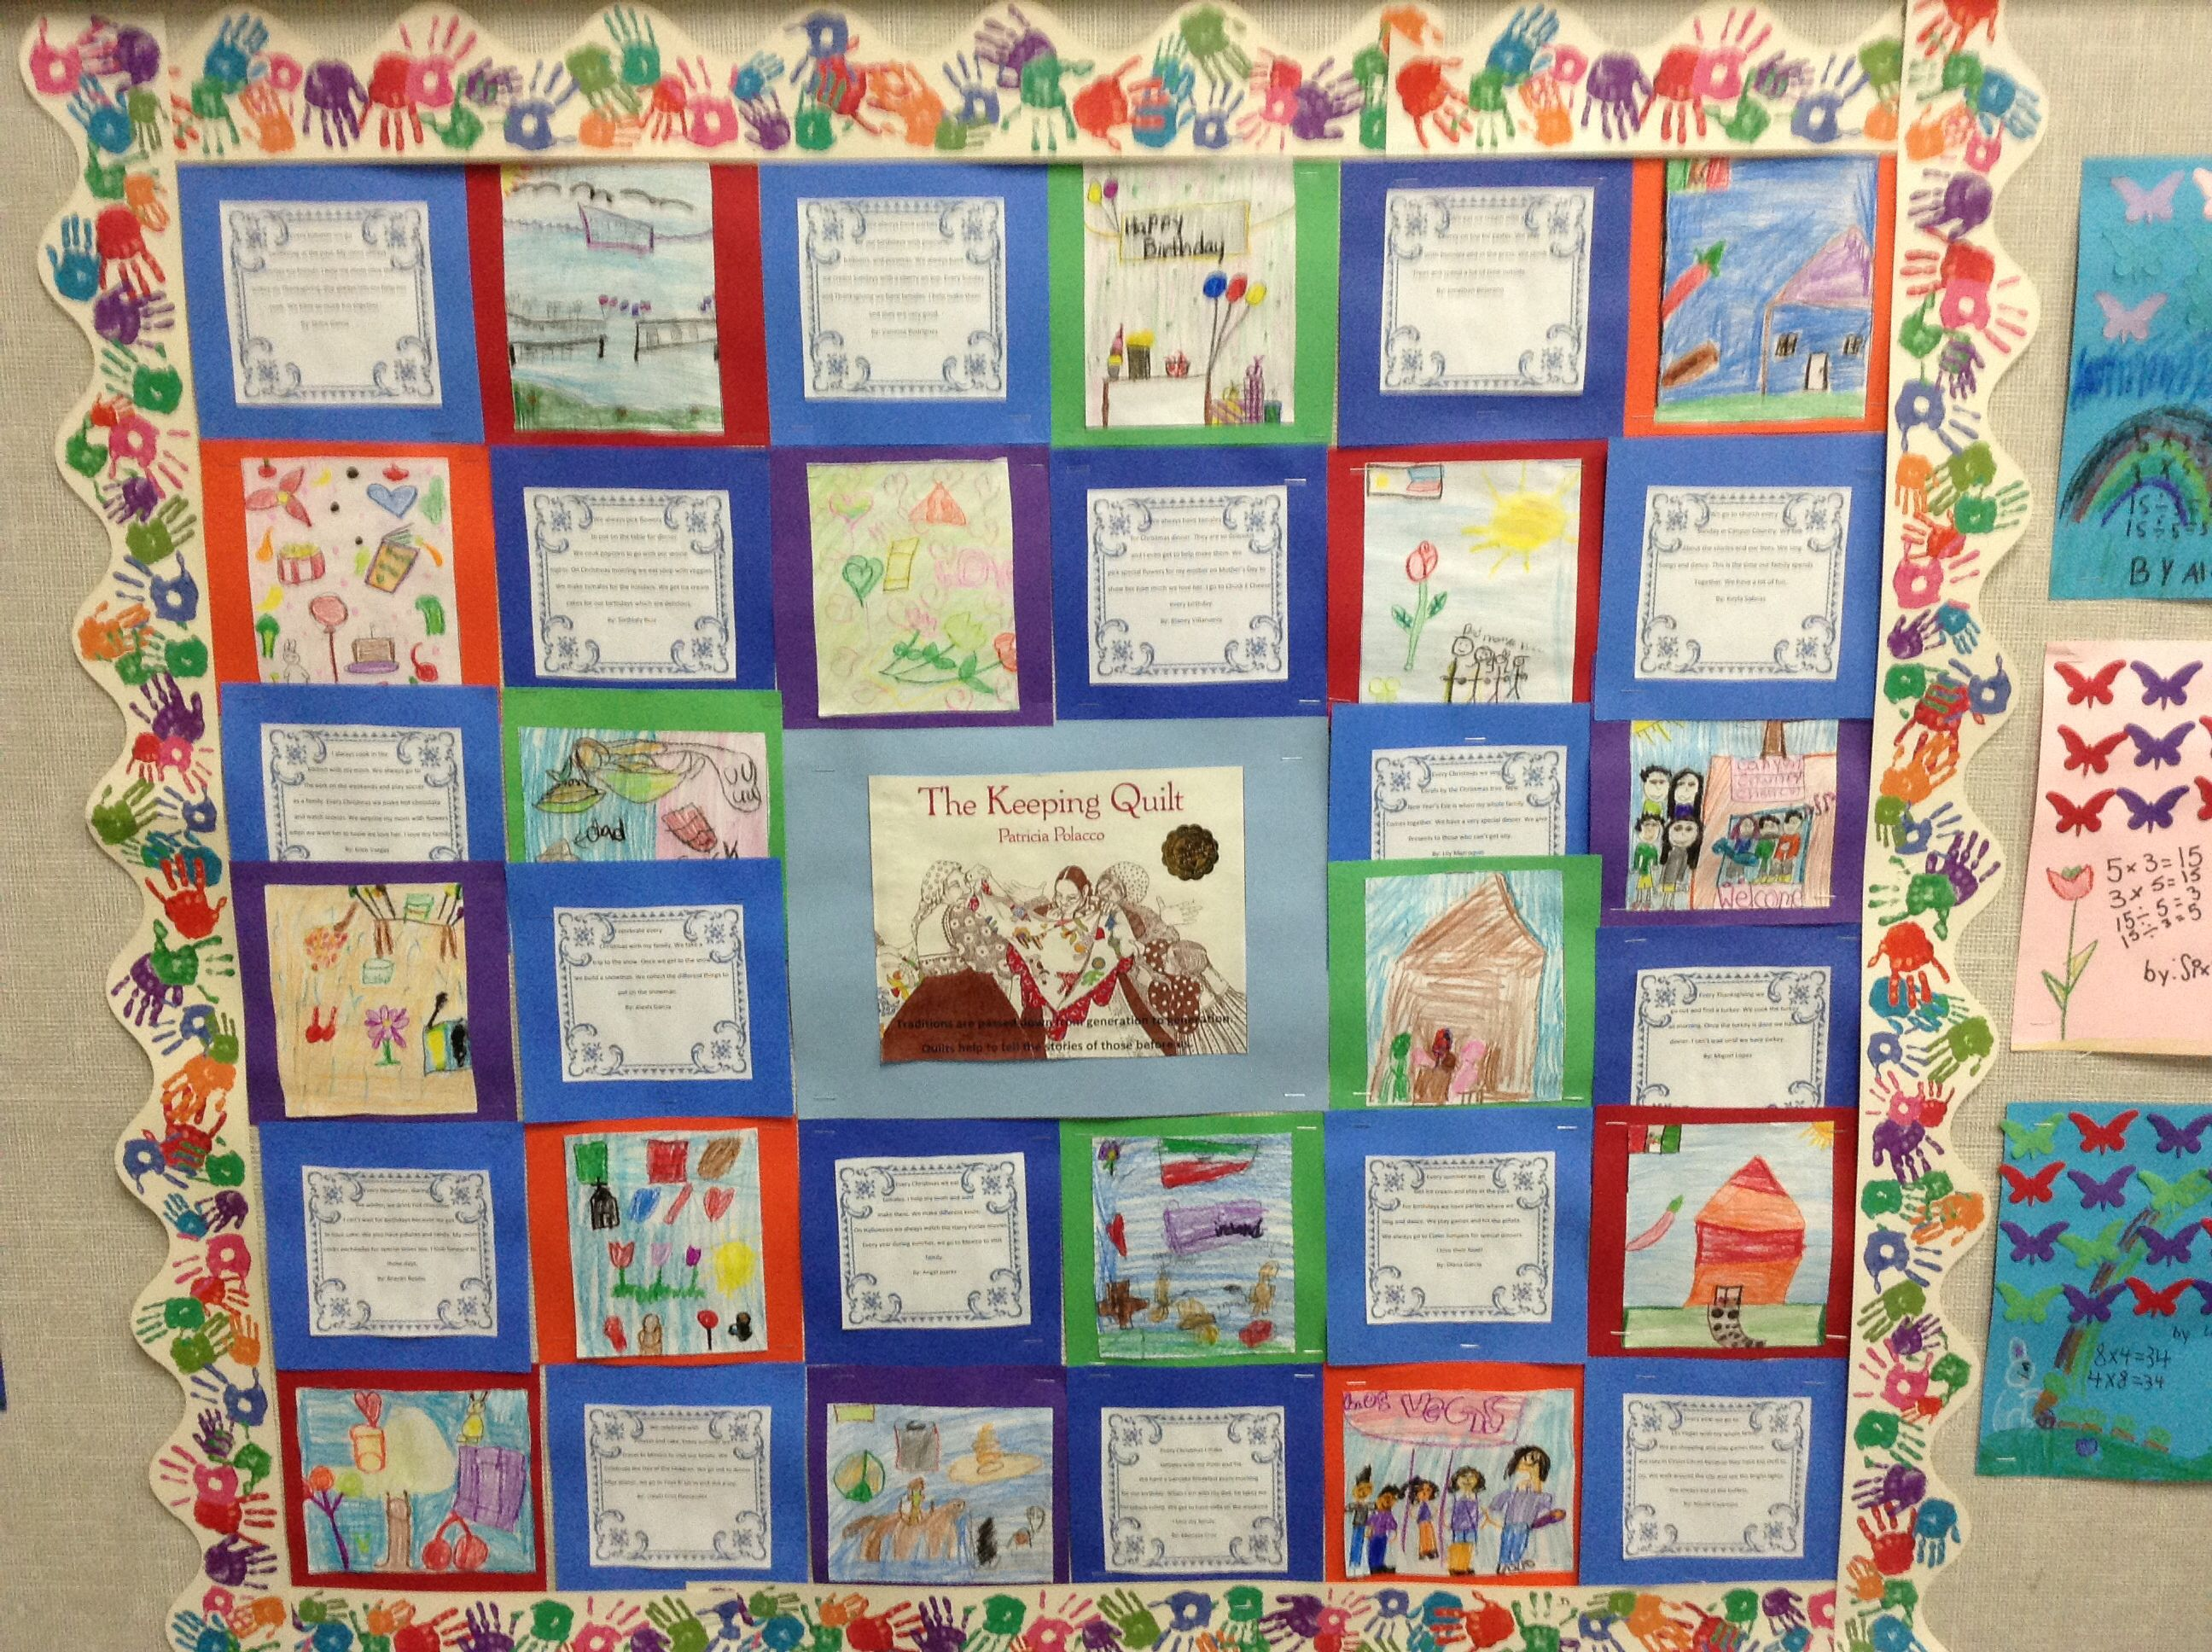 The Keeping Quilt By Patricia Polacco Students Decorate